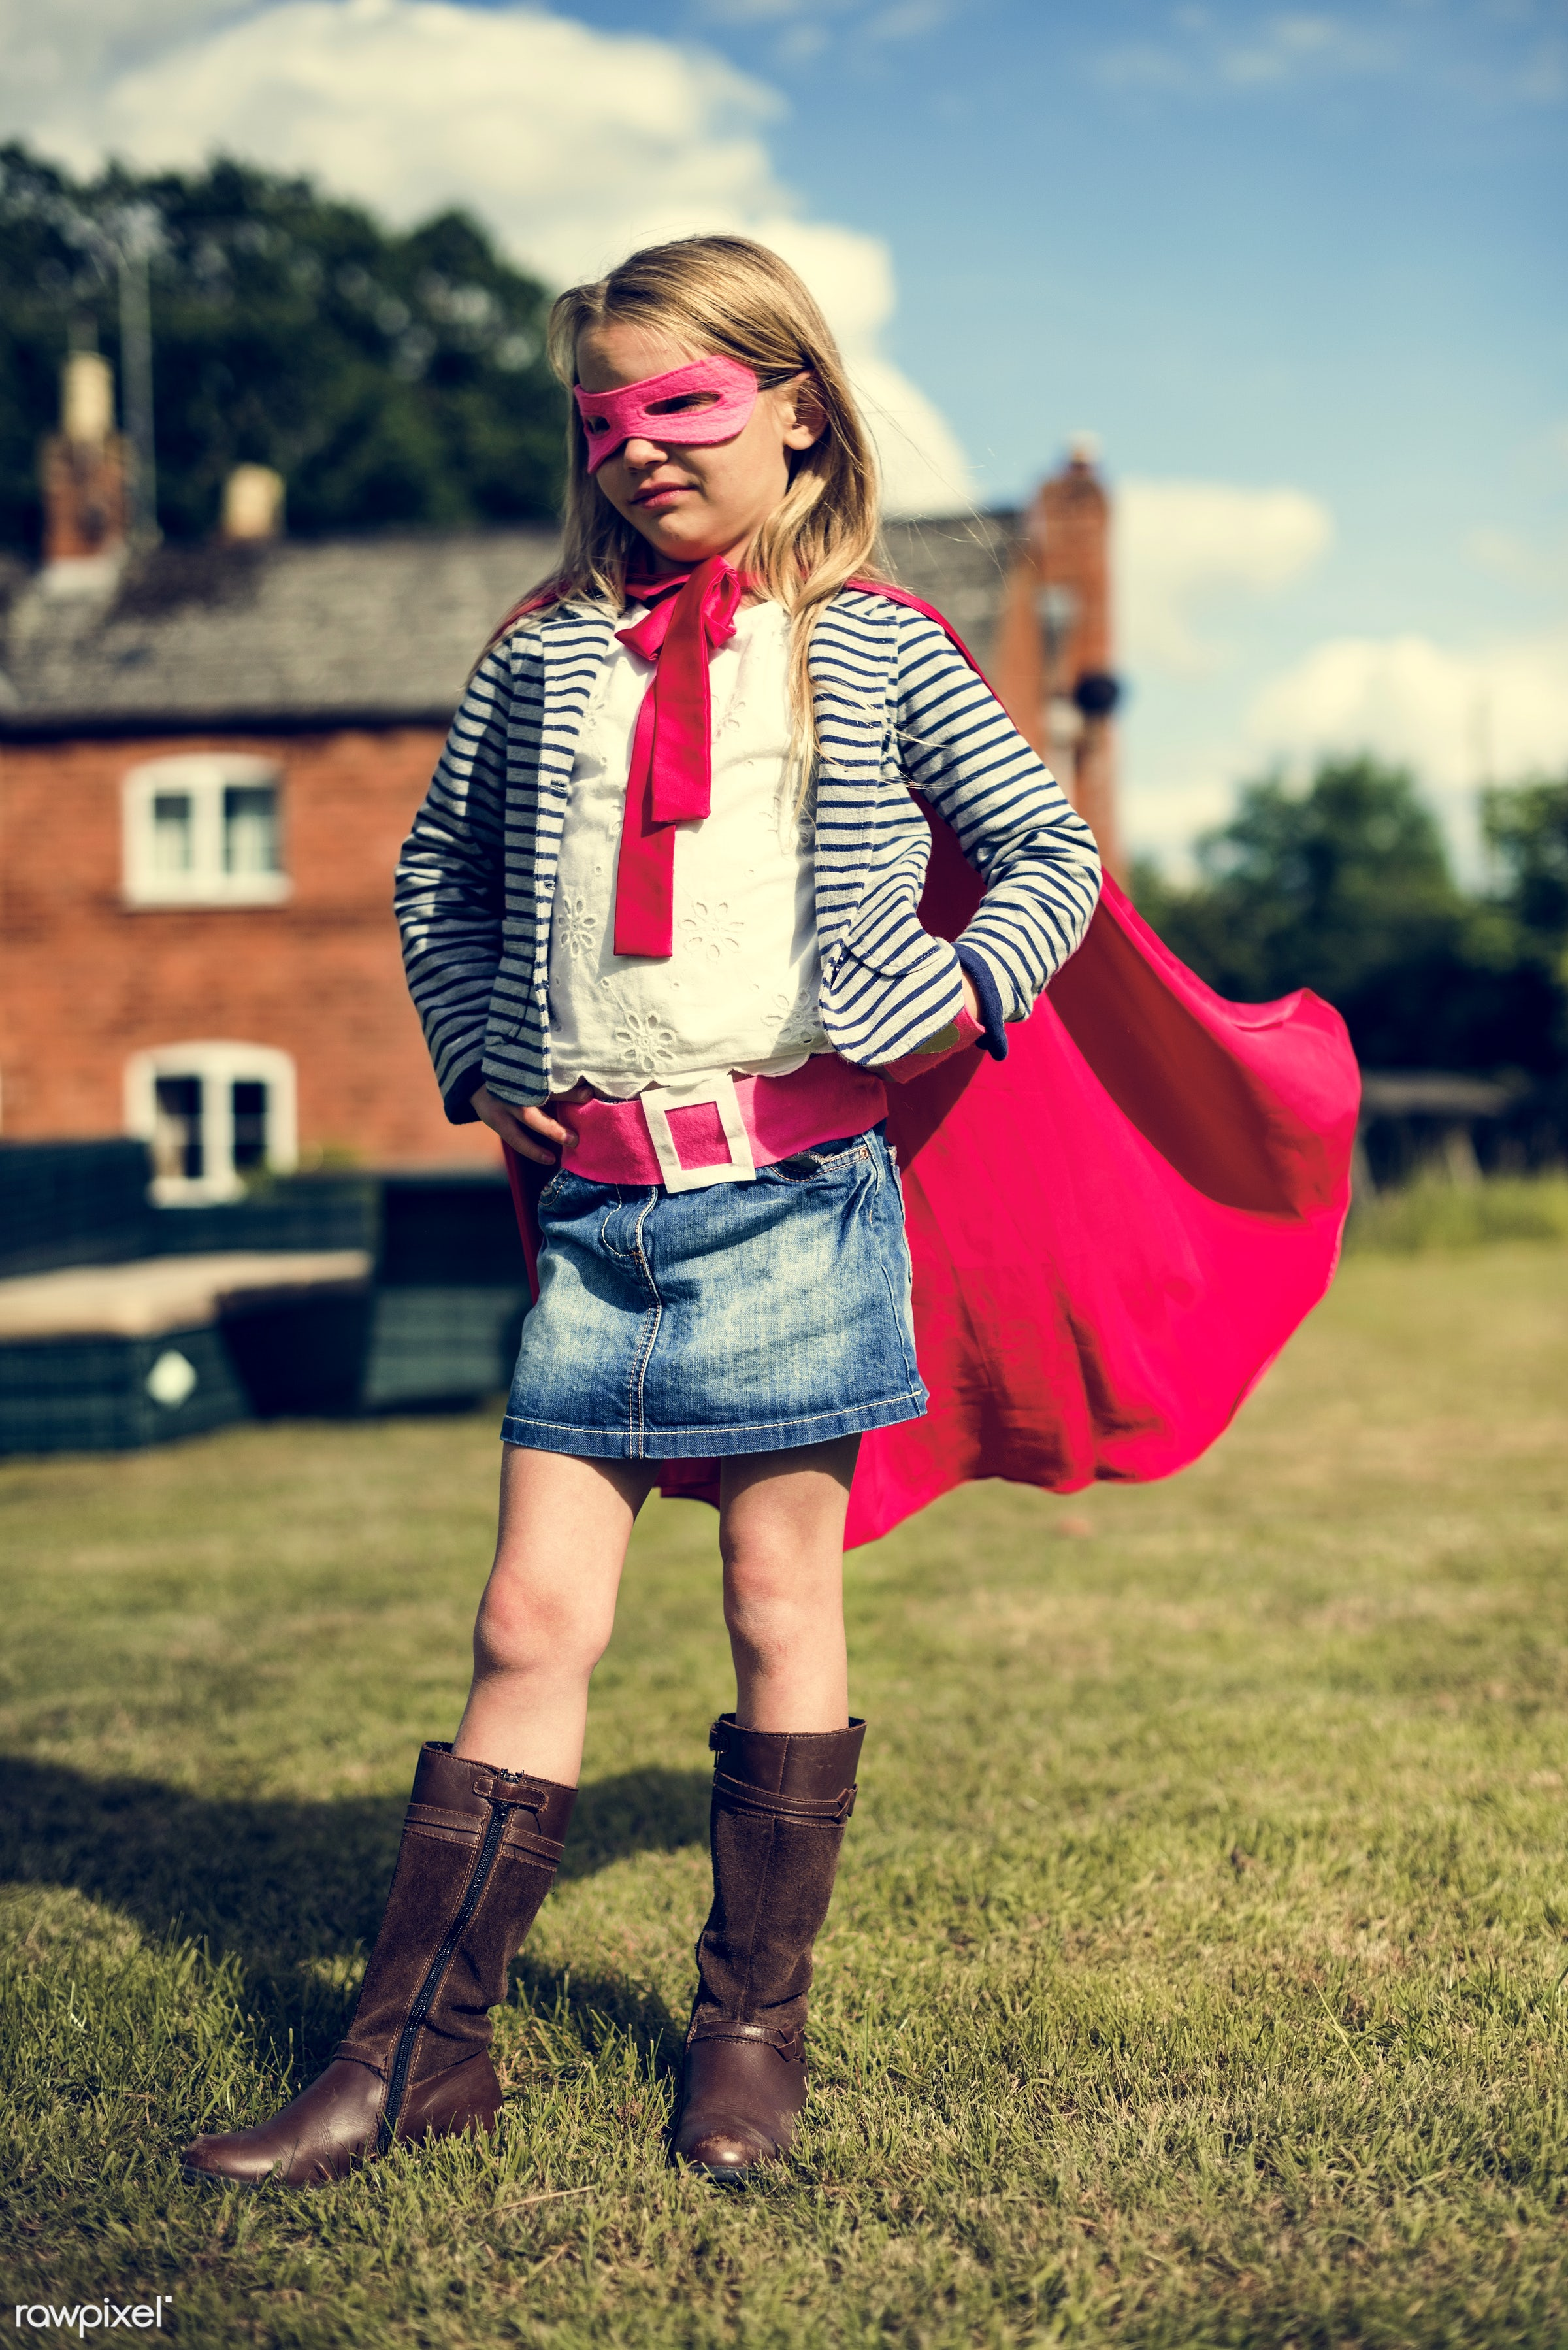 active, activity, adorable, aspirations, brave, cheerful, child, childhood, confidence, costume, cute, determination,...